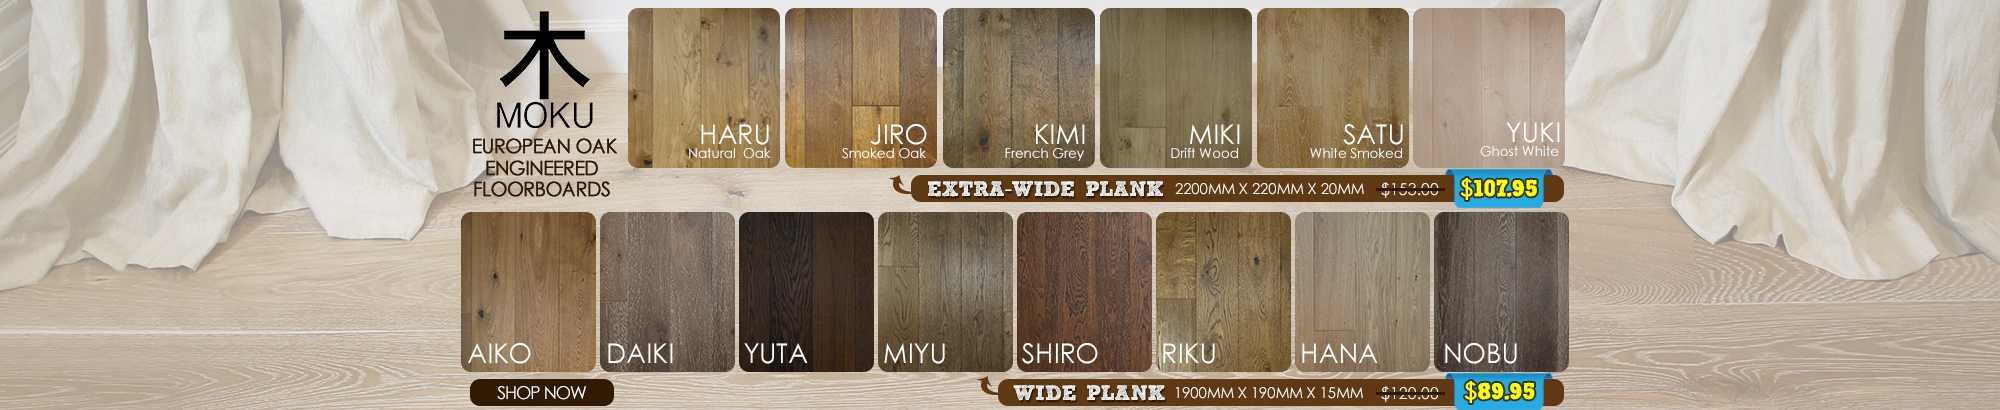 Moku Oak Floorboards